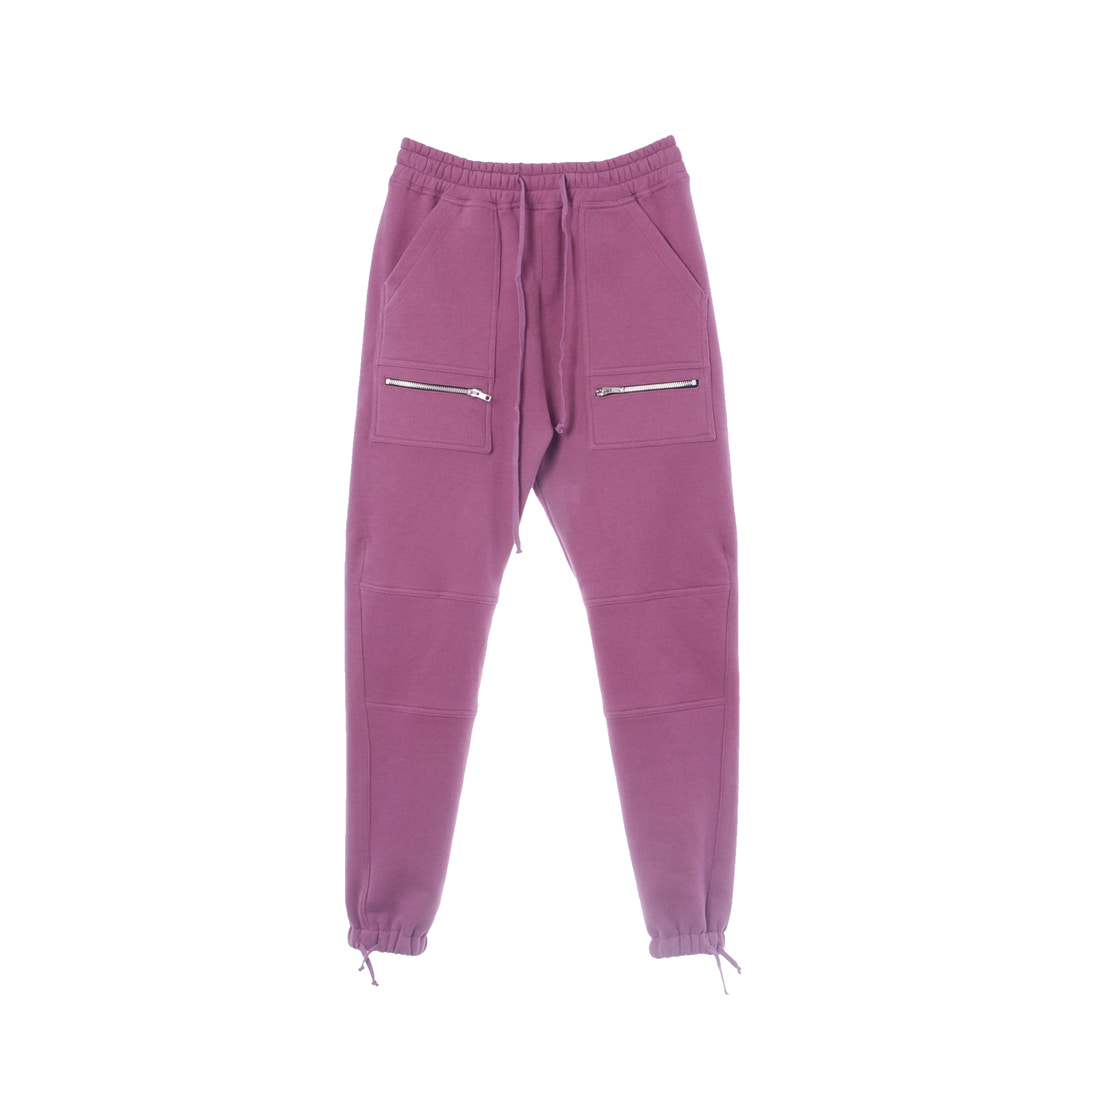 ORCHID STRING JOGGER PANTS